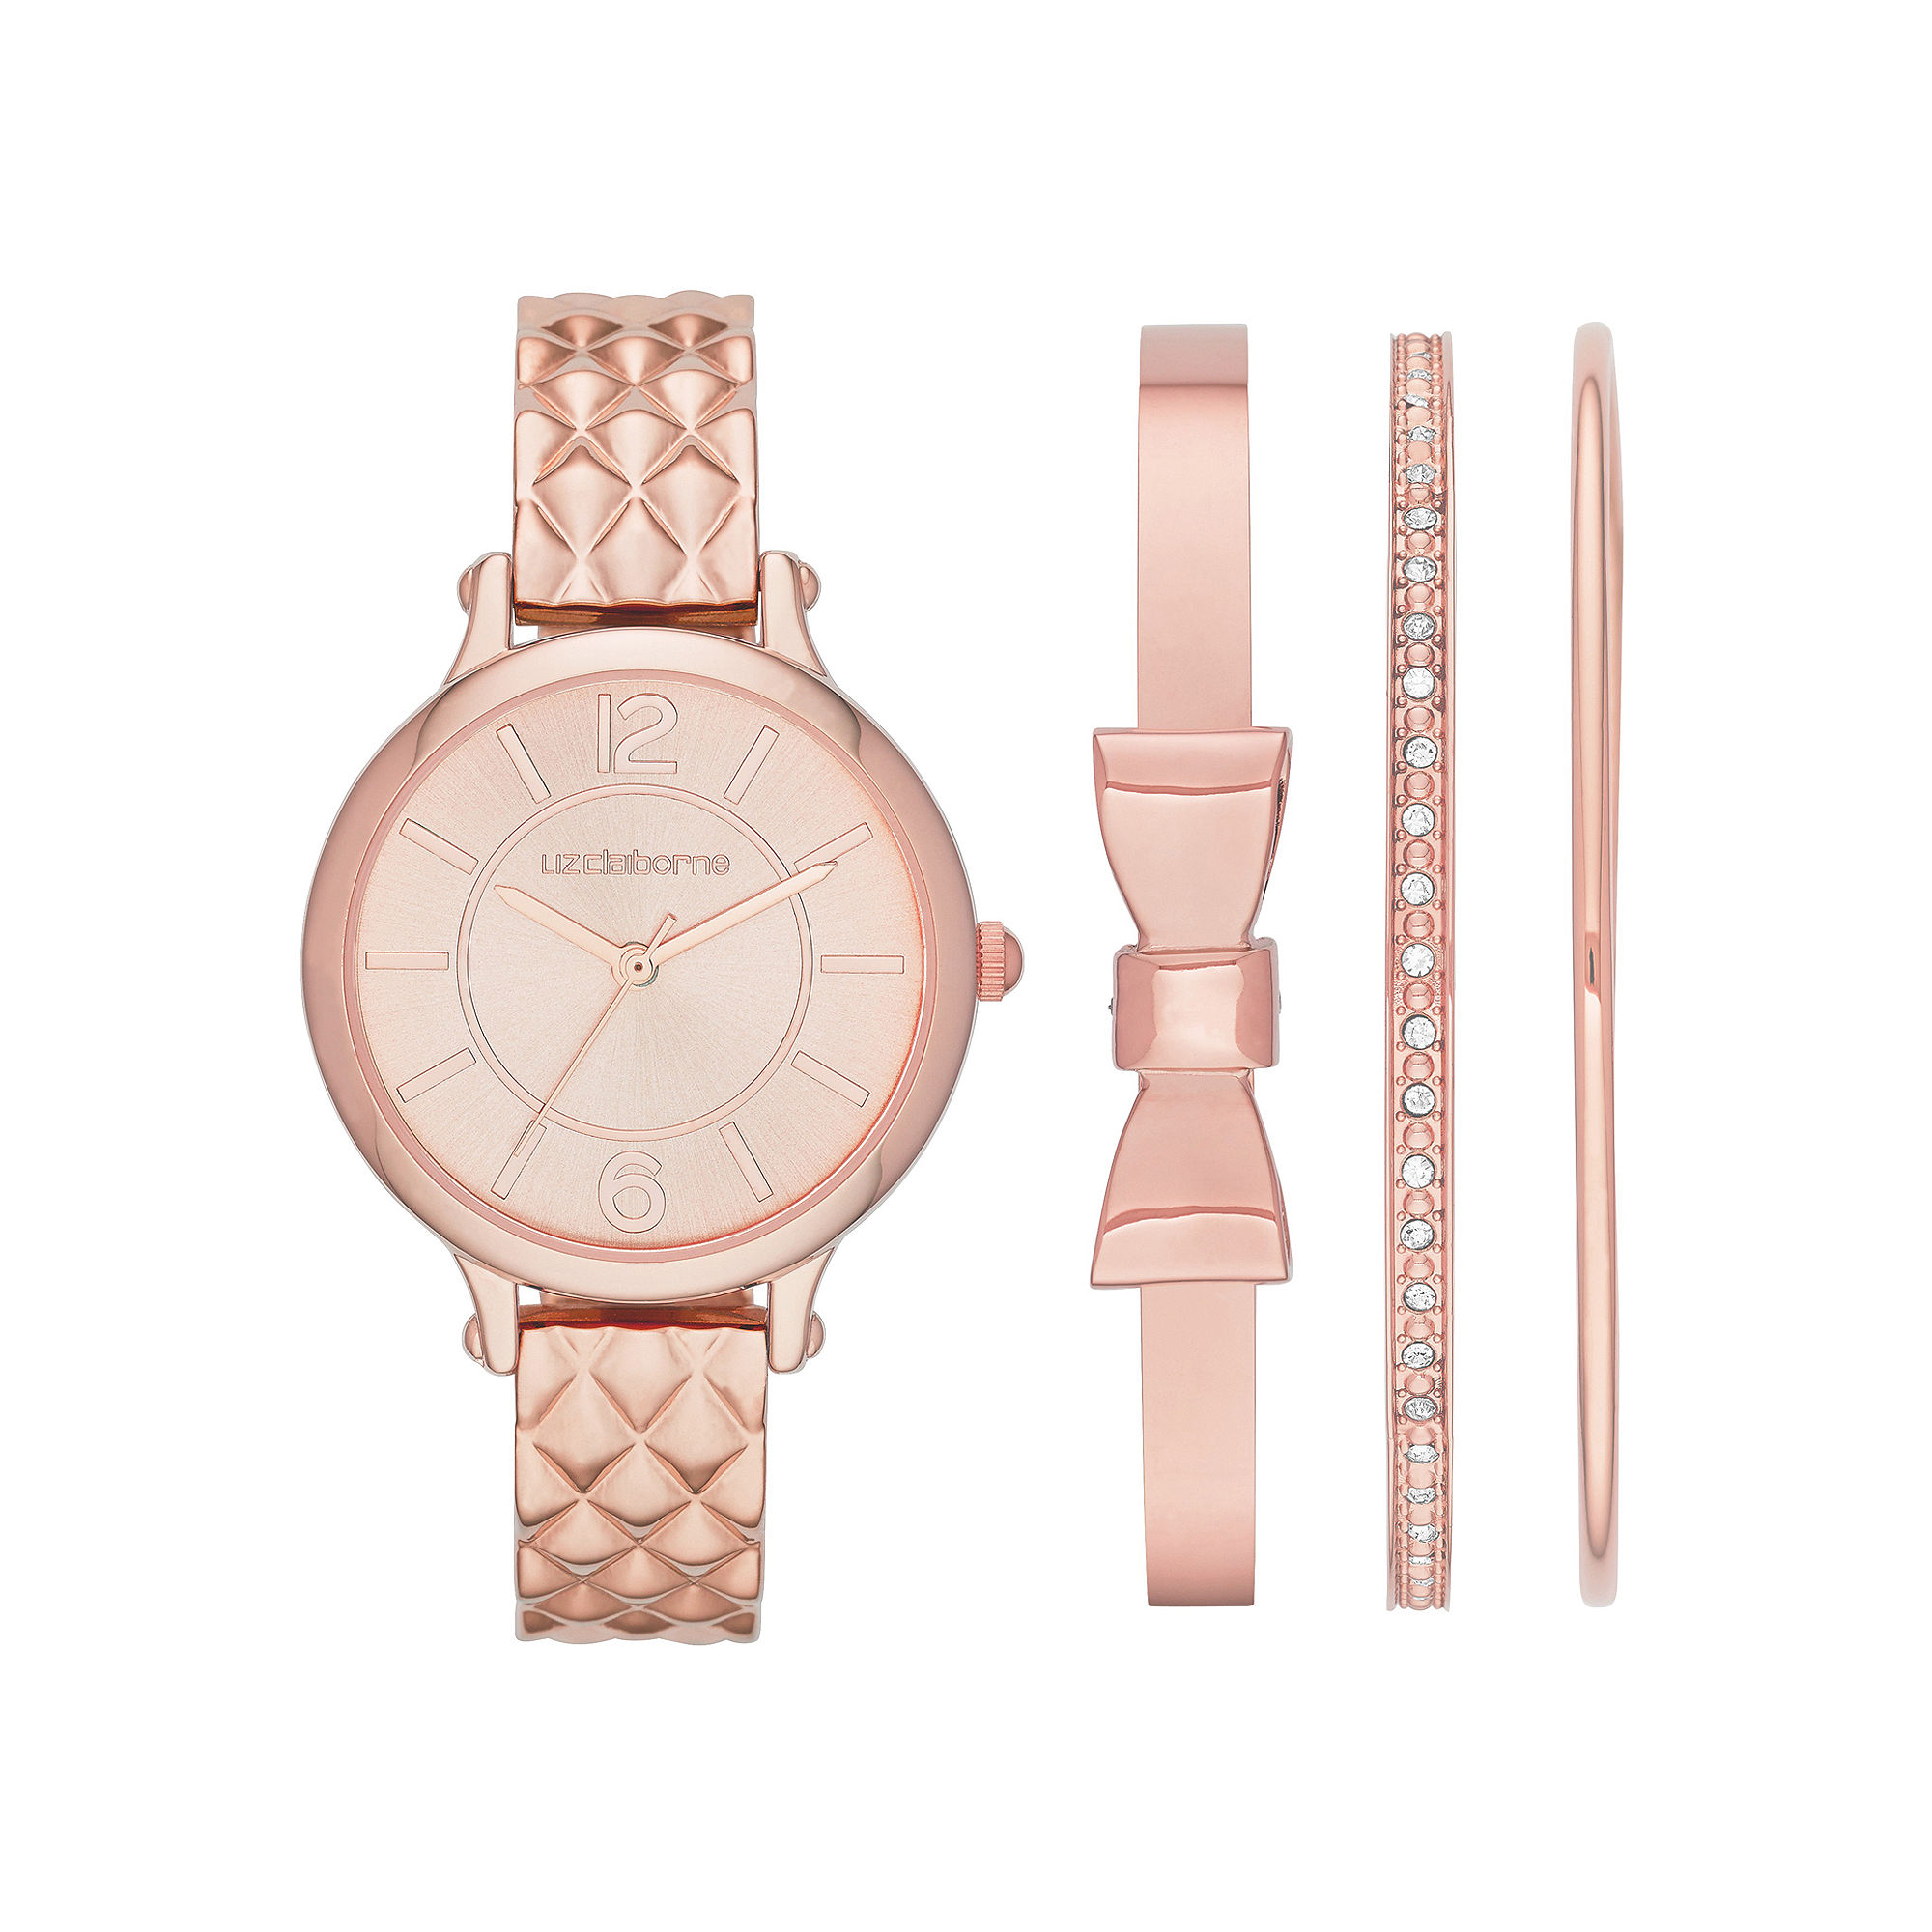 Liz Claiborne Womens Quilt-Look Bangle Watch and Bangle Set